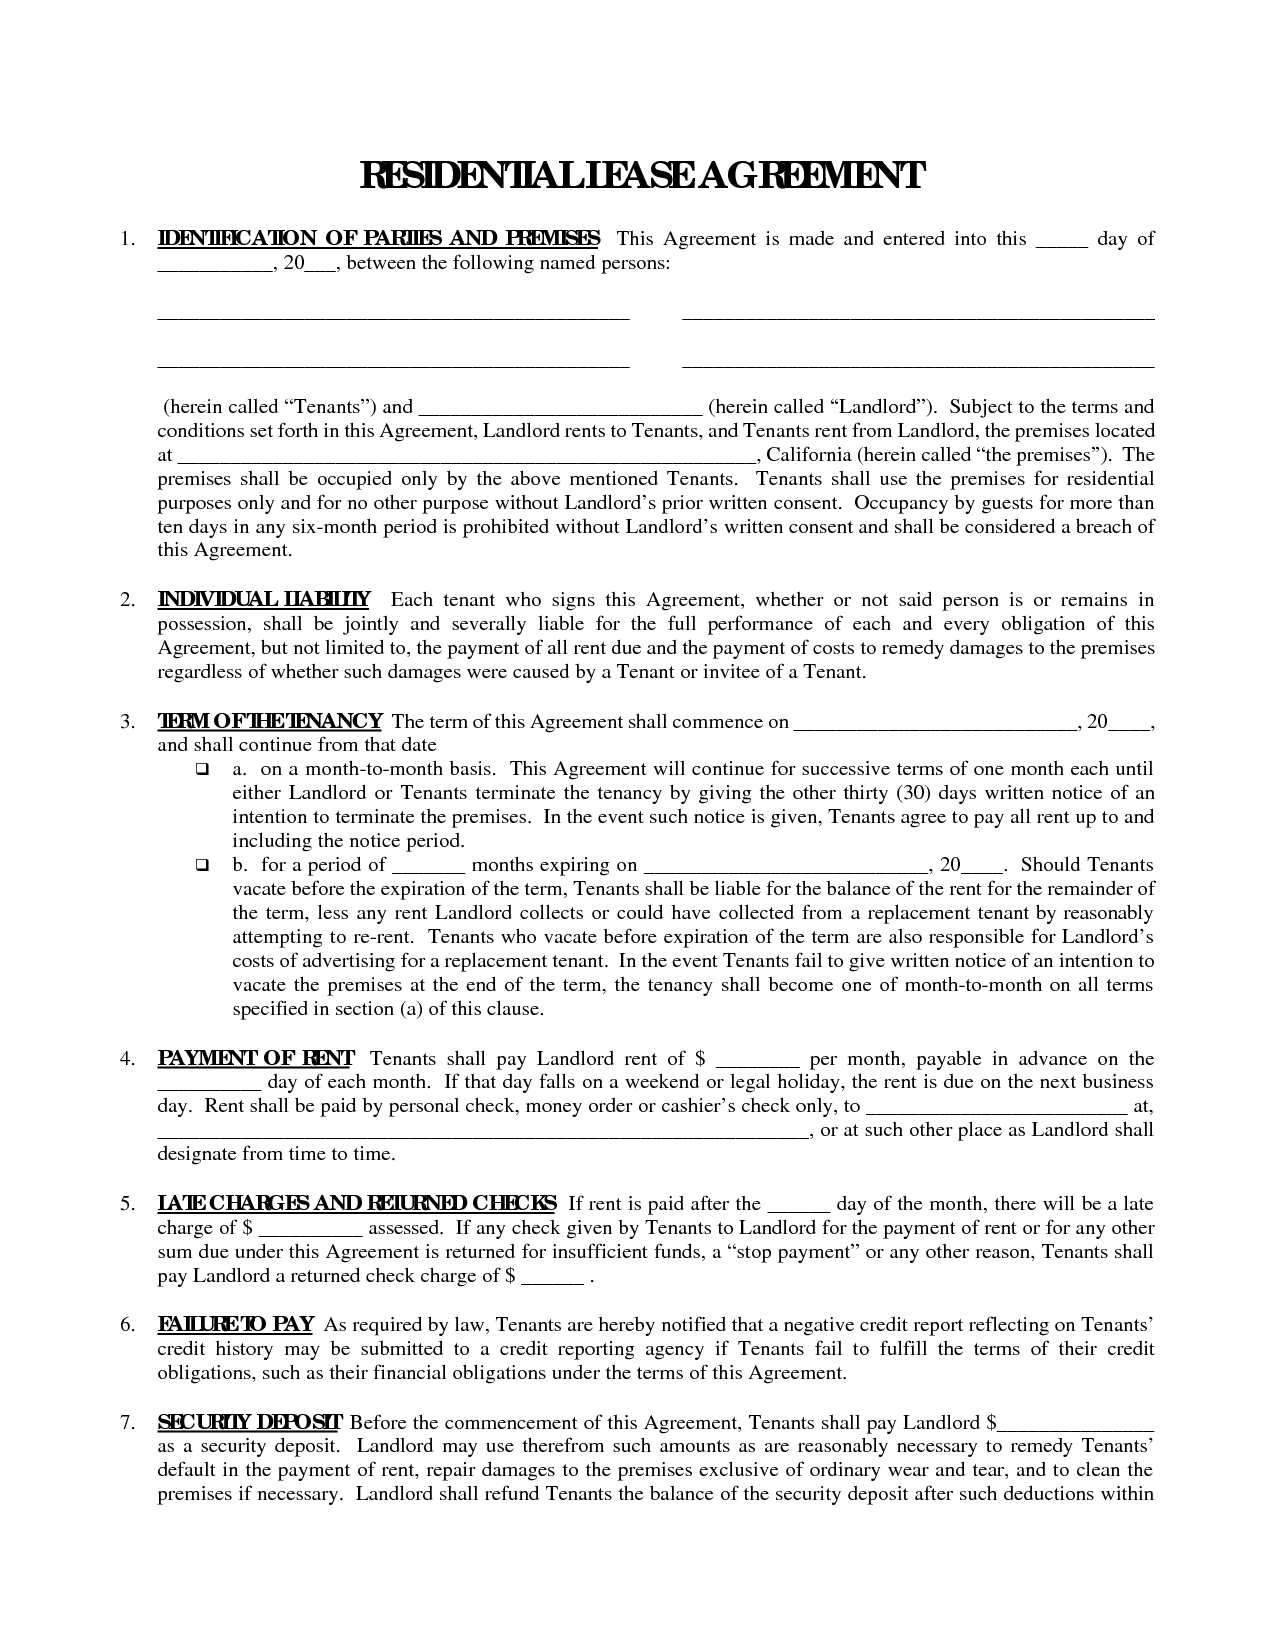 Printable Residential Free House Lease Agreement Residential Lease Agreement Real Estate Legal F Lease Agreement Rental Agreement Templates Being A Landlord